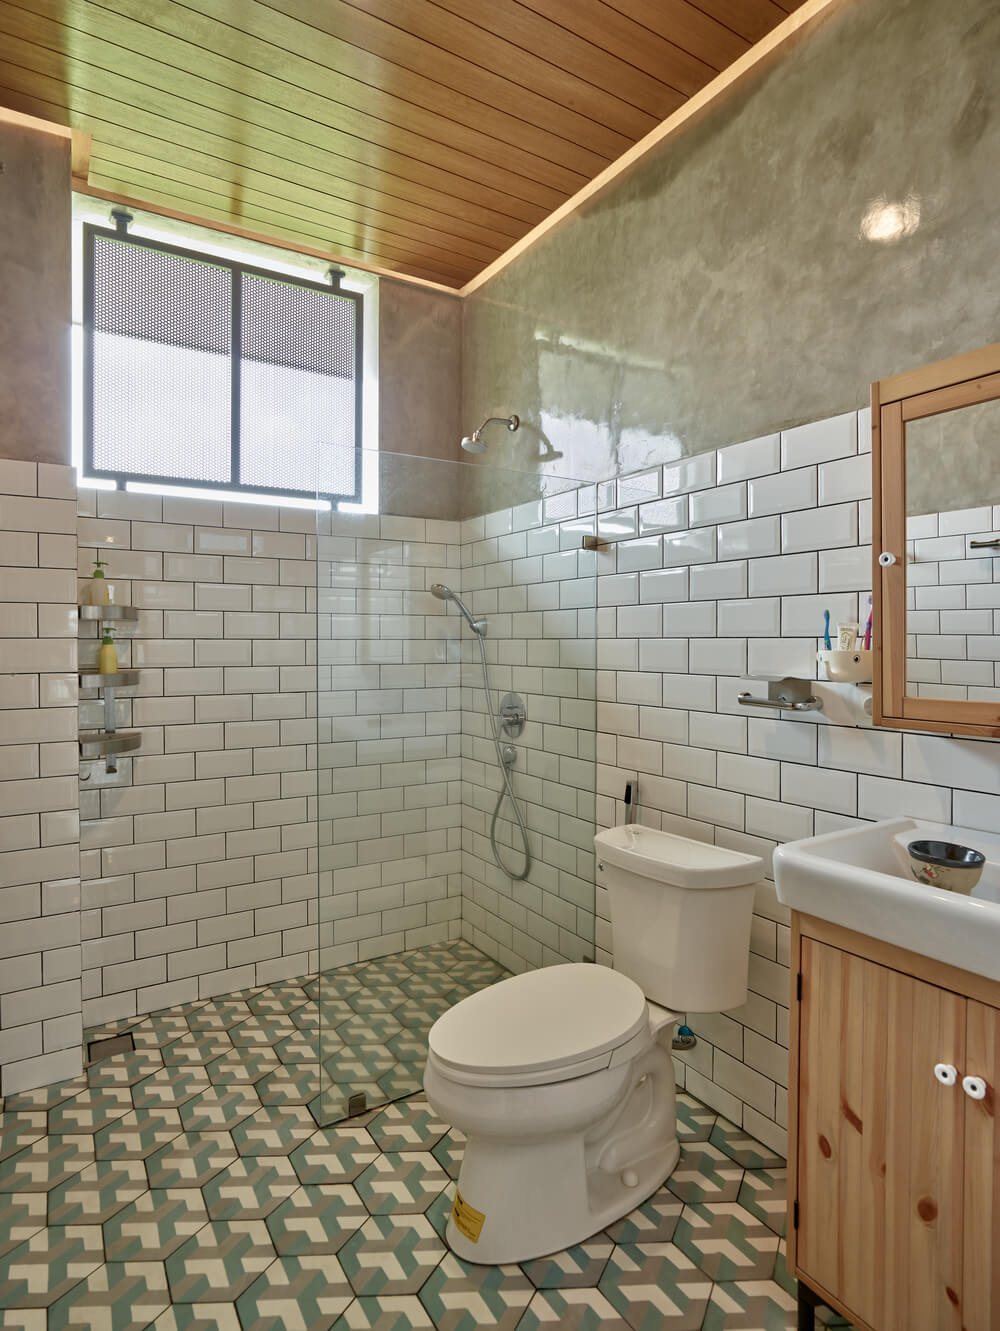 The bathroom has white subway tiles on its walls paired with patterned tiles on the floor that make the toilet and vanity stand out.